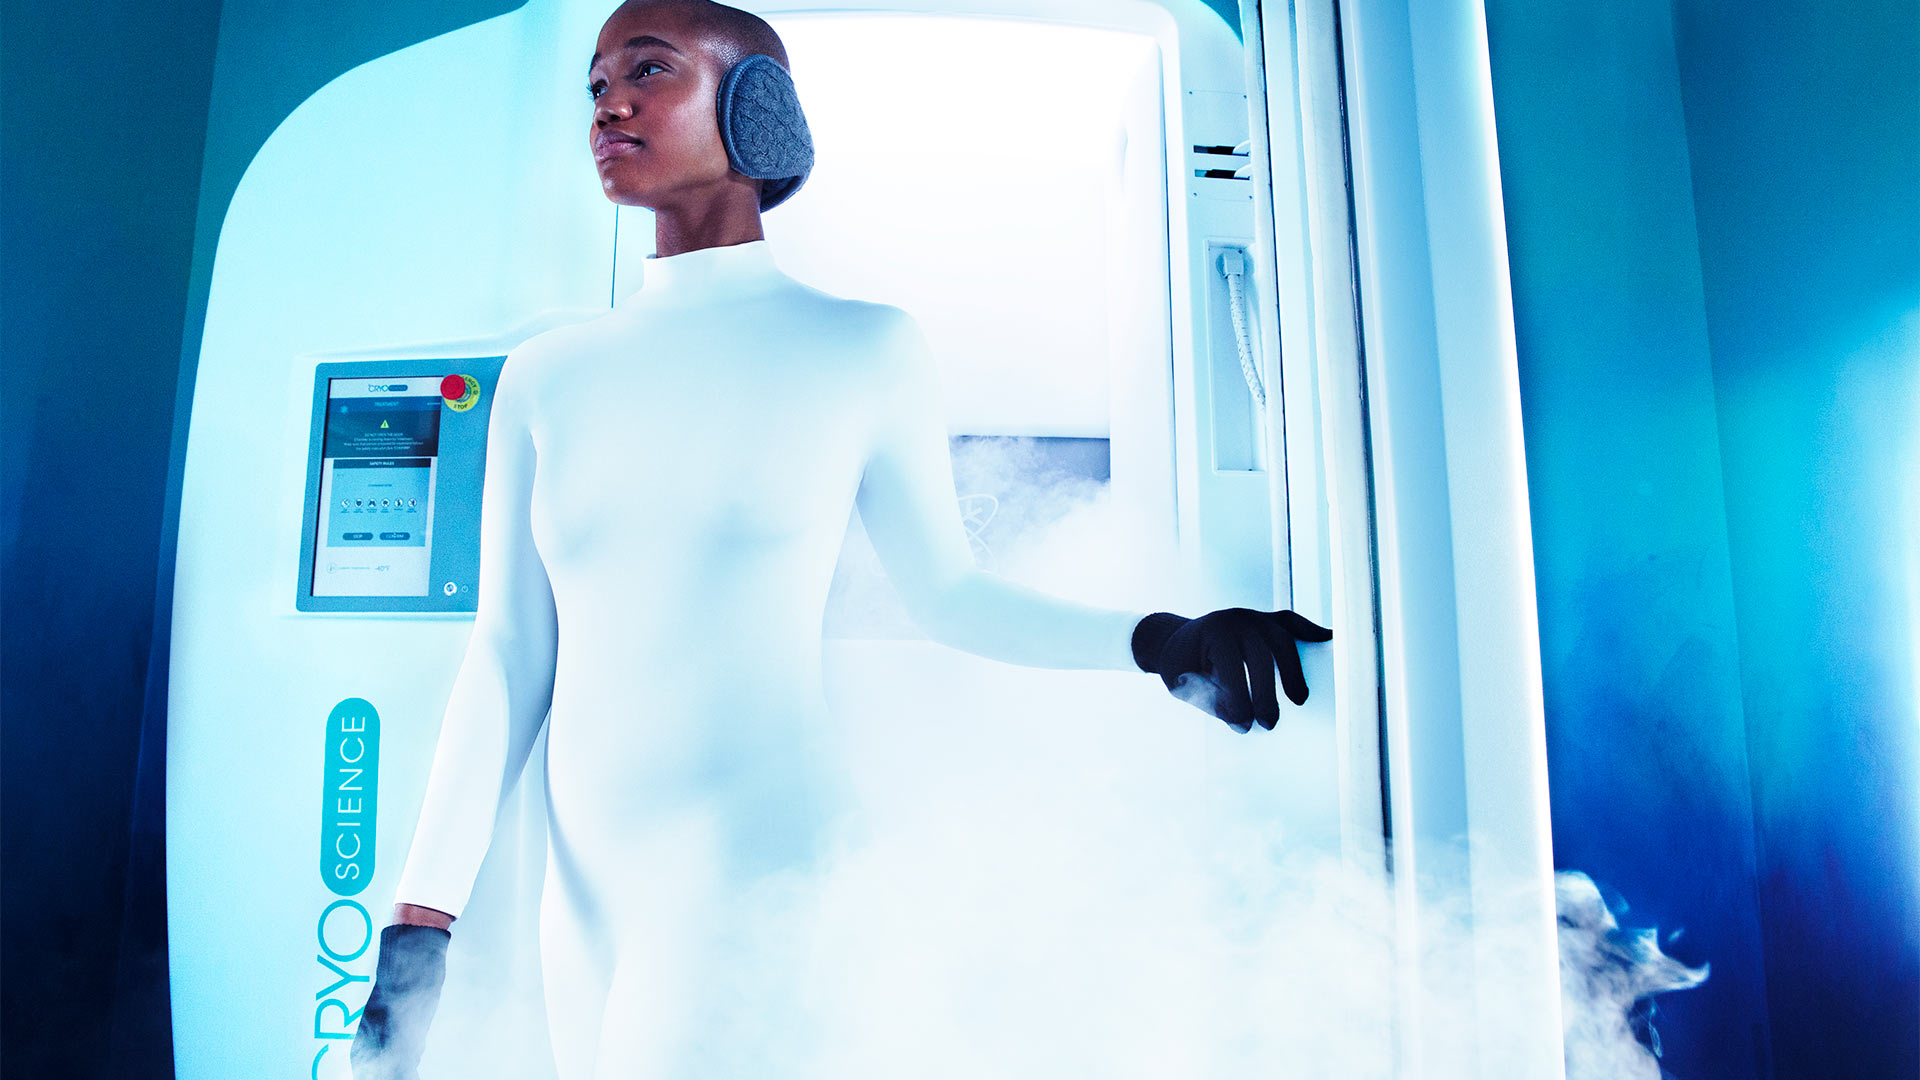 a woman in a futuristic white jumpsuit is walking out of a steam chamber